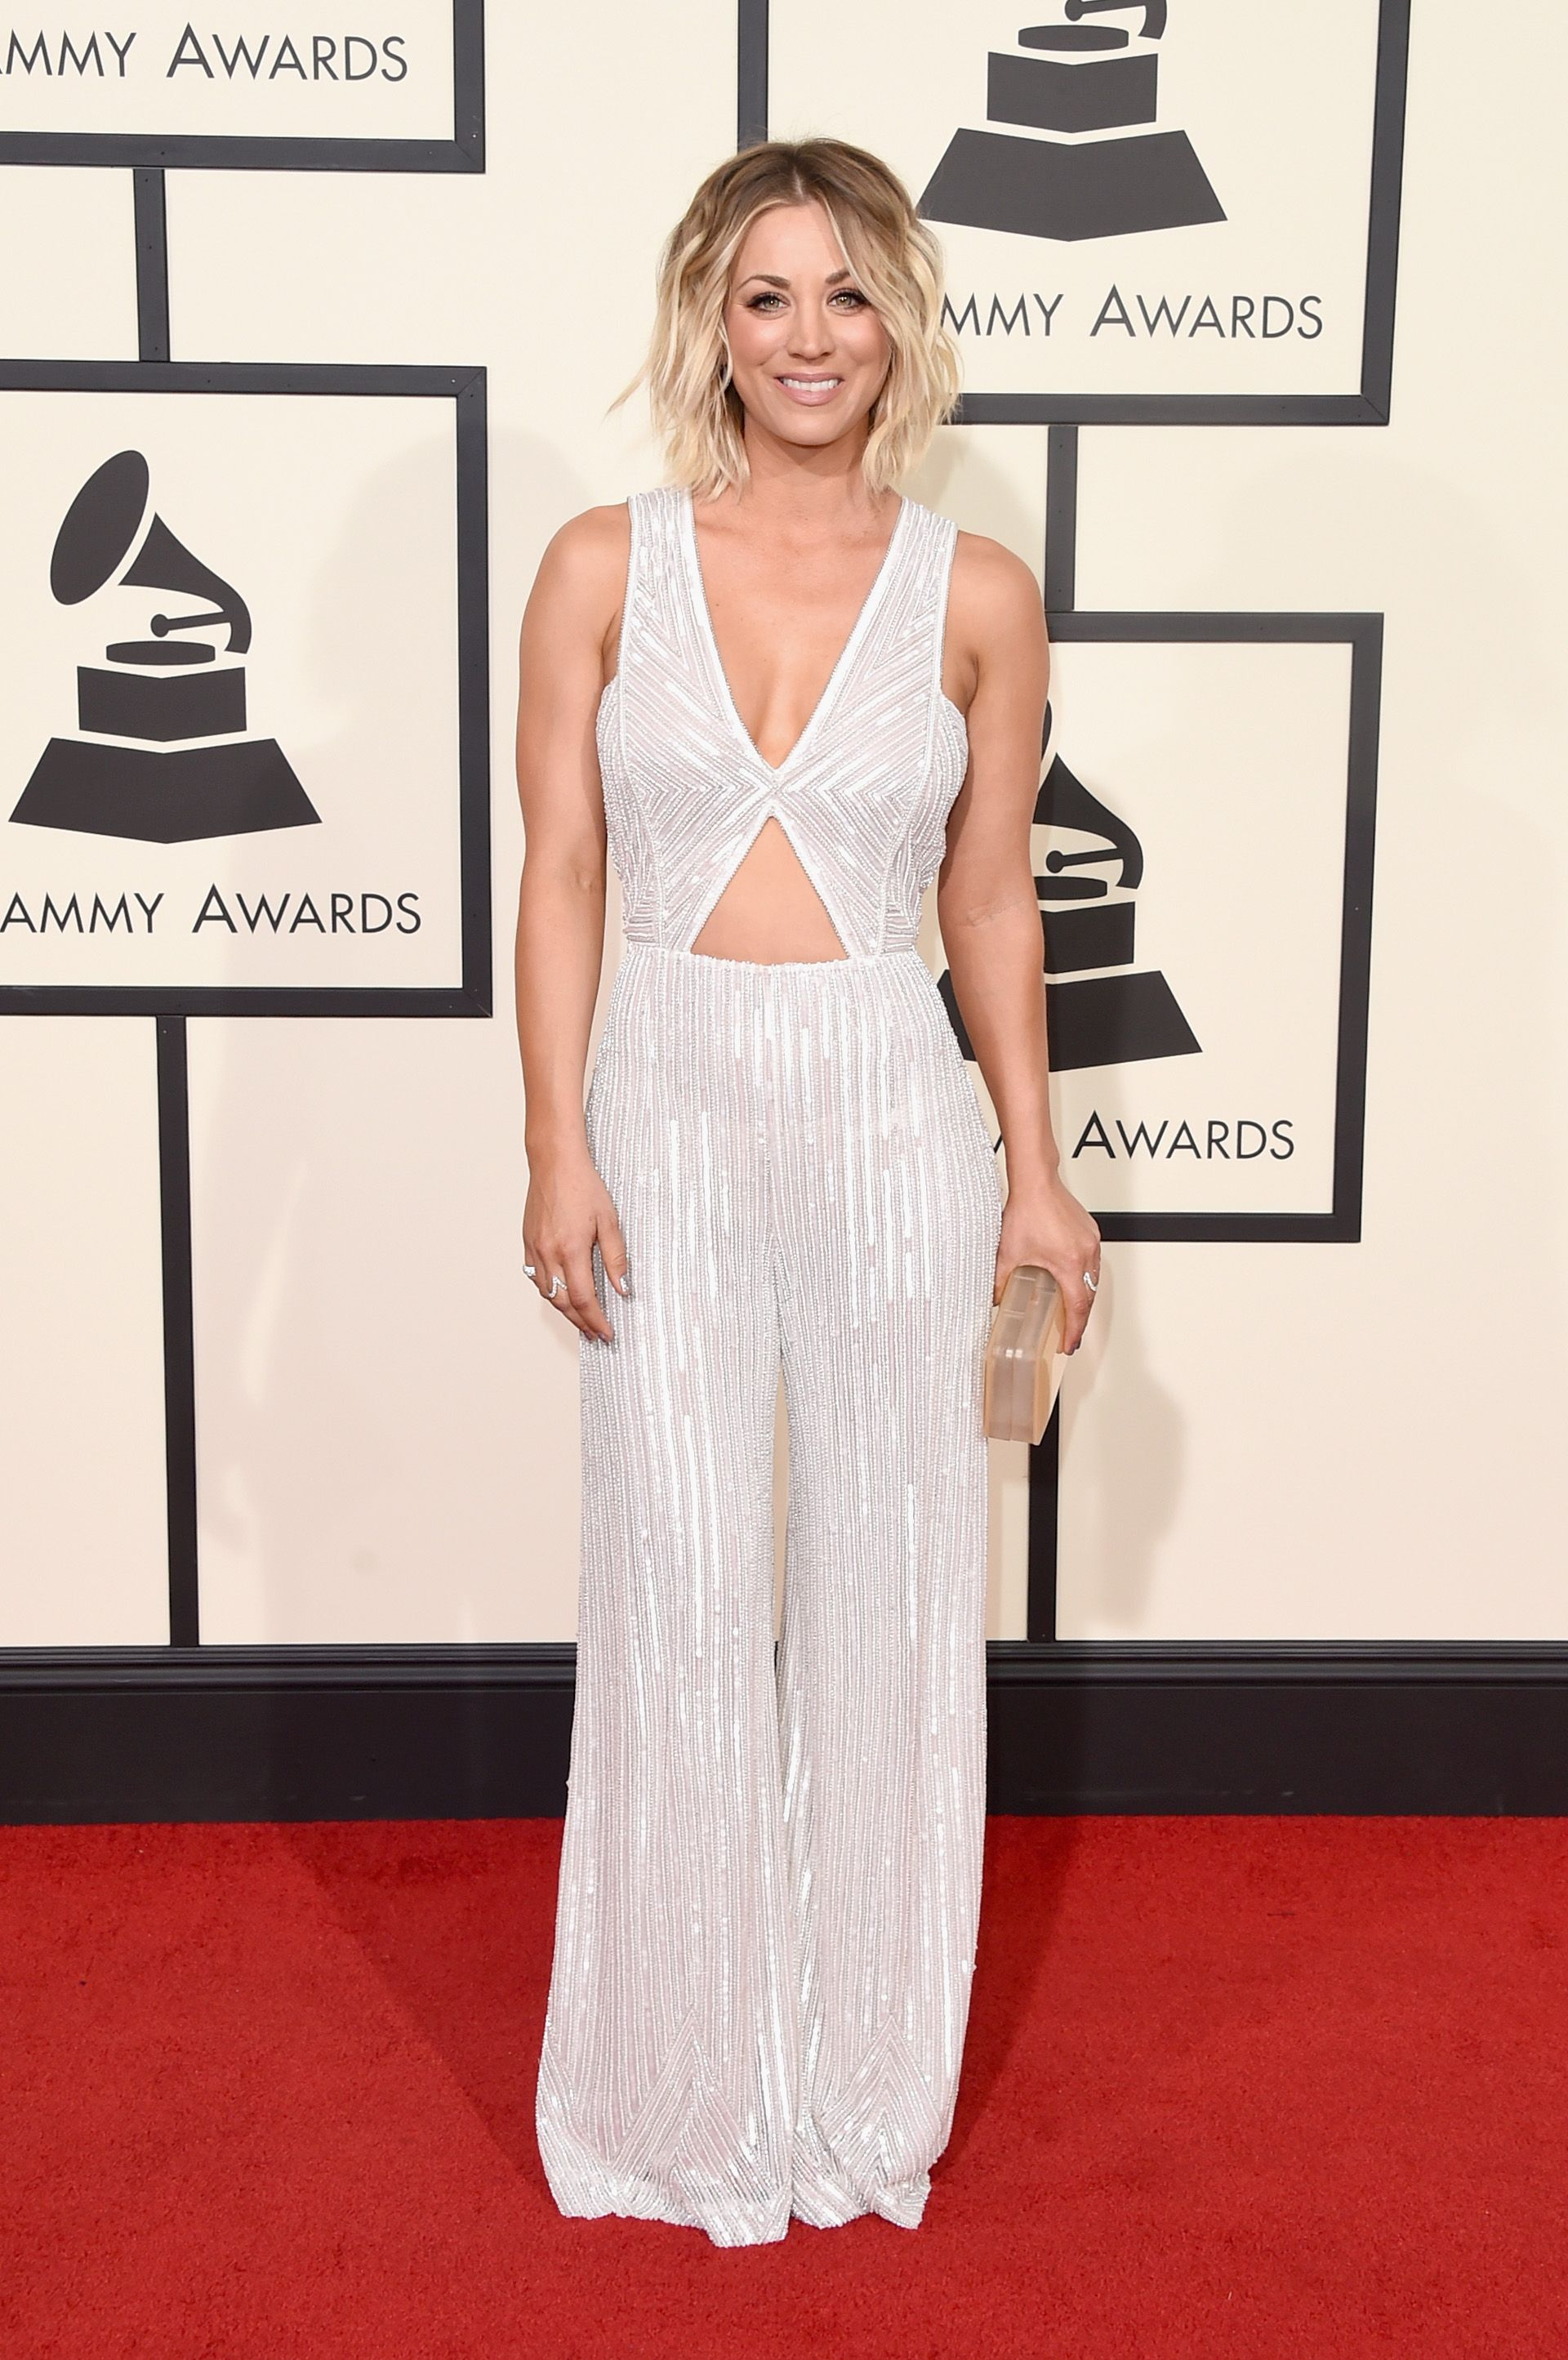 Kaley Cuoco atThe 58th GrammyAwards at Staples Center on February 15, 2016, in Los Angeles, California | Photo:Jason Merritt/Getty Images